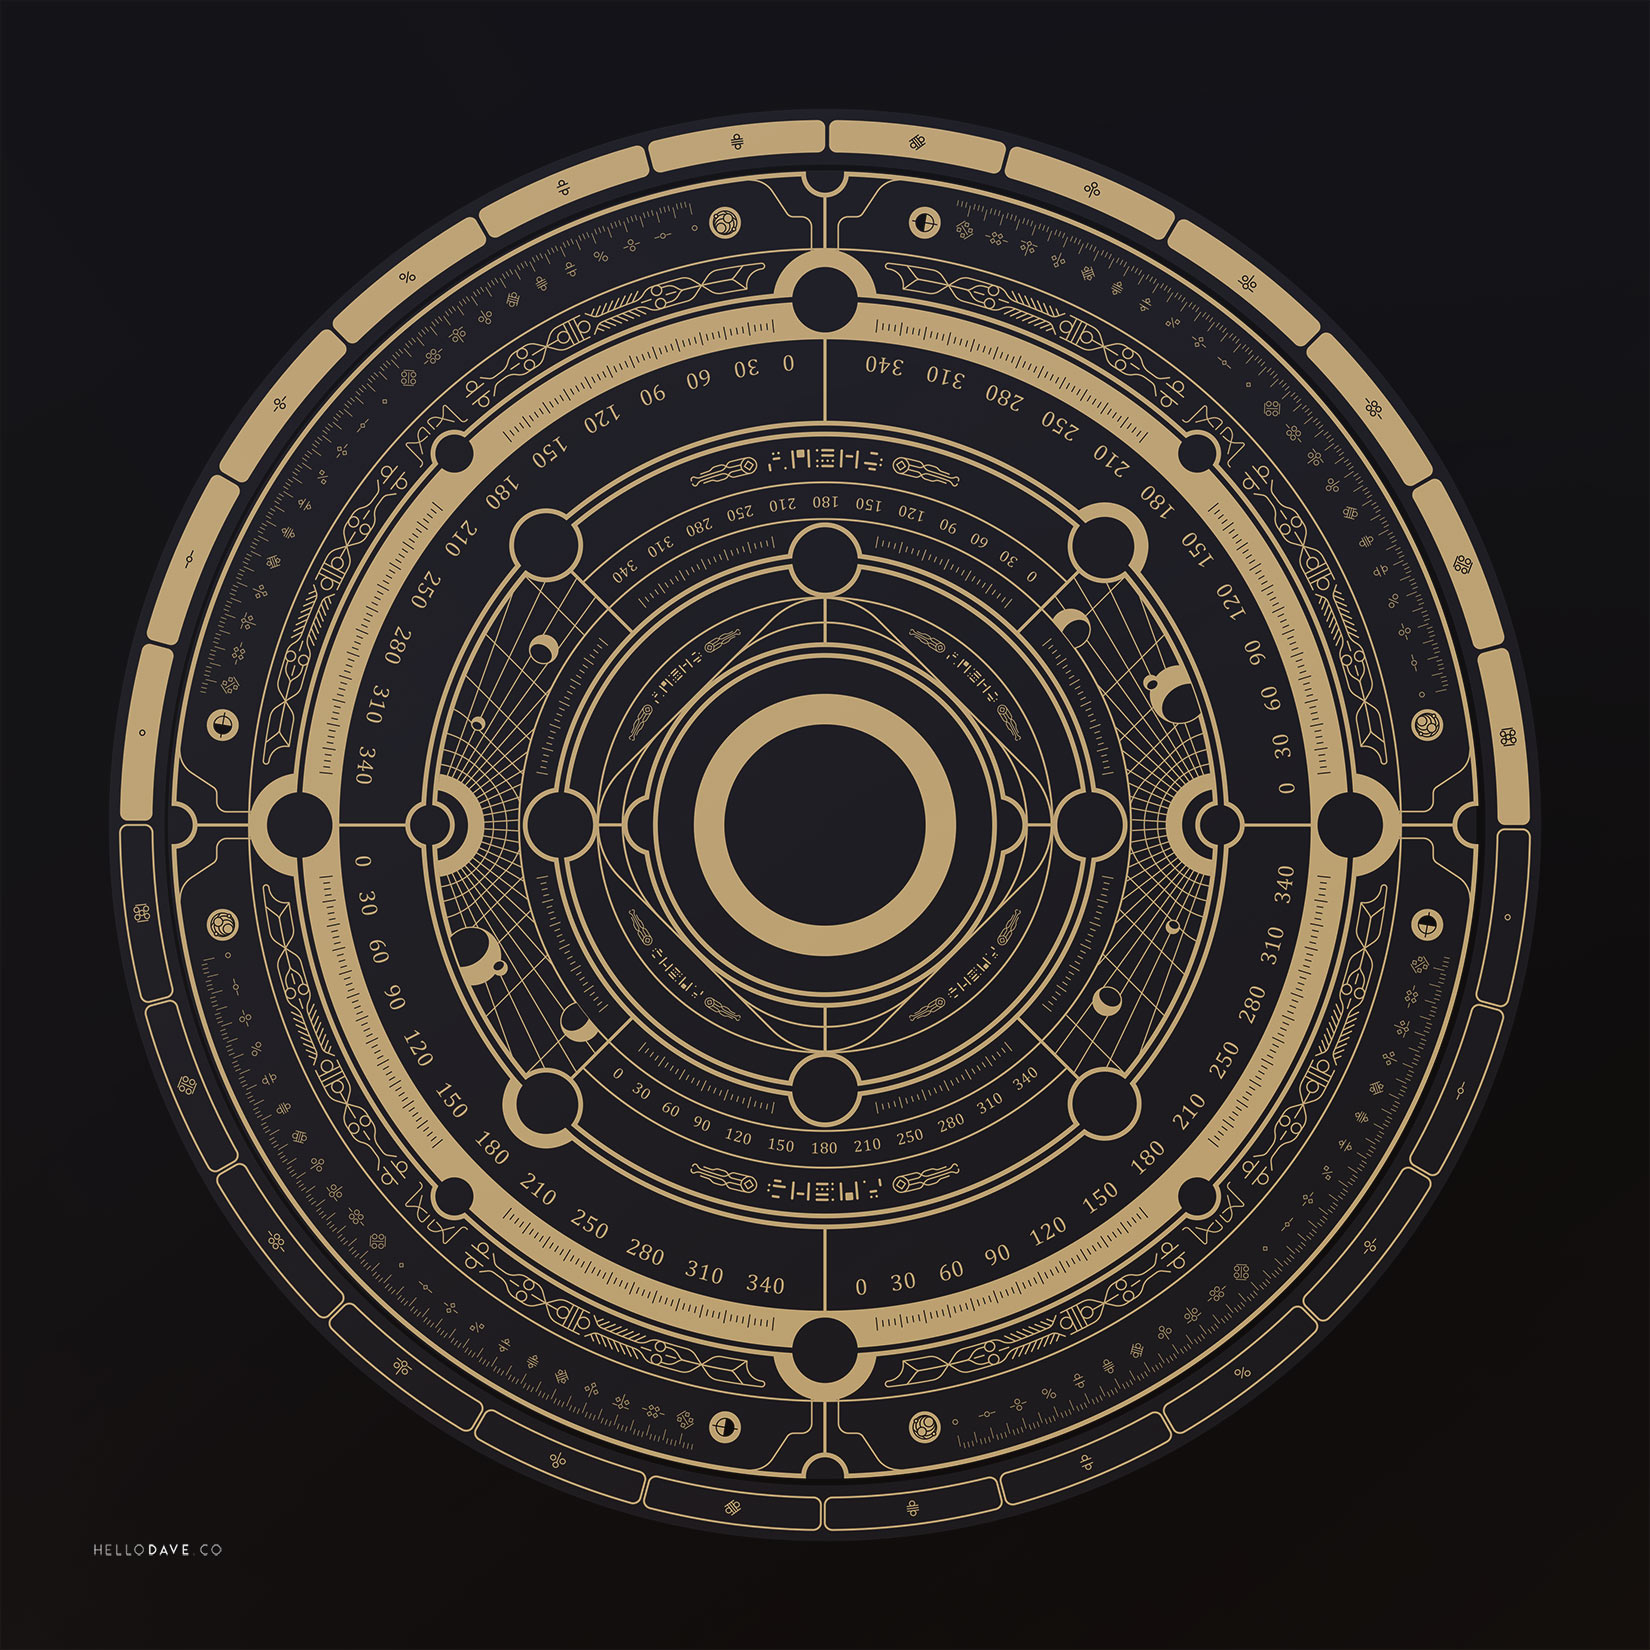 Steampunk_table_astrolabe_12_FHD